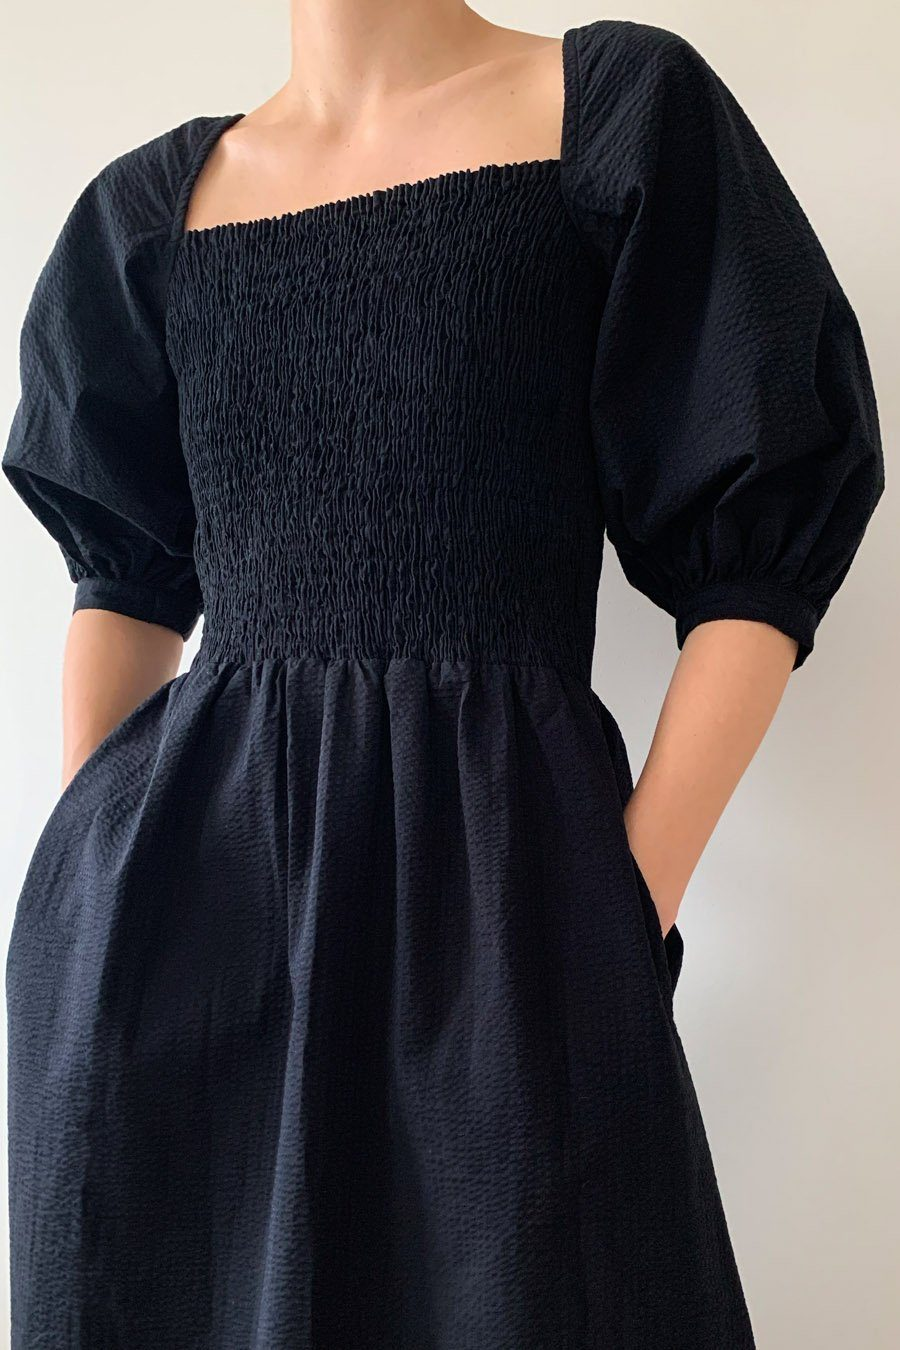 JACINTHA DRESS - BLACK Dress Stylein